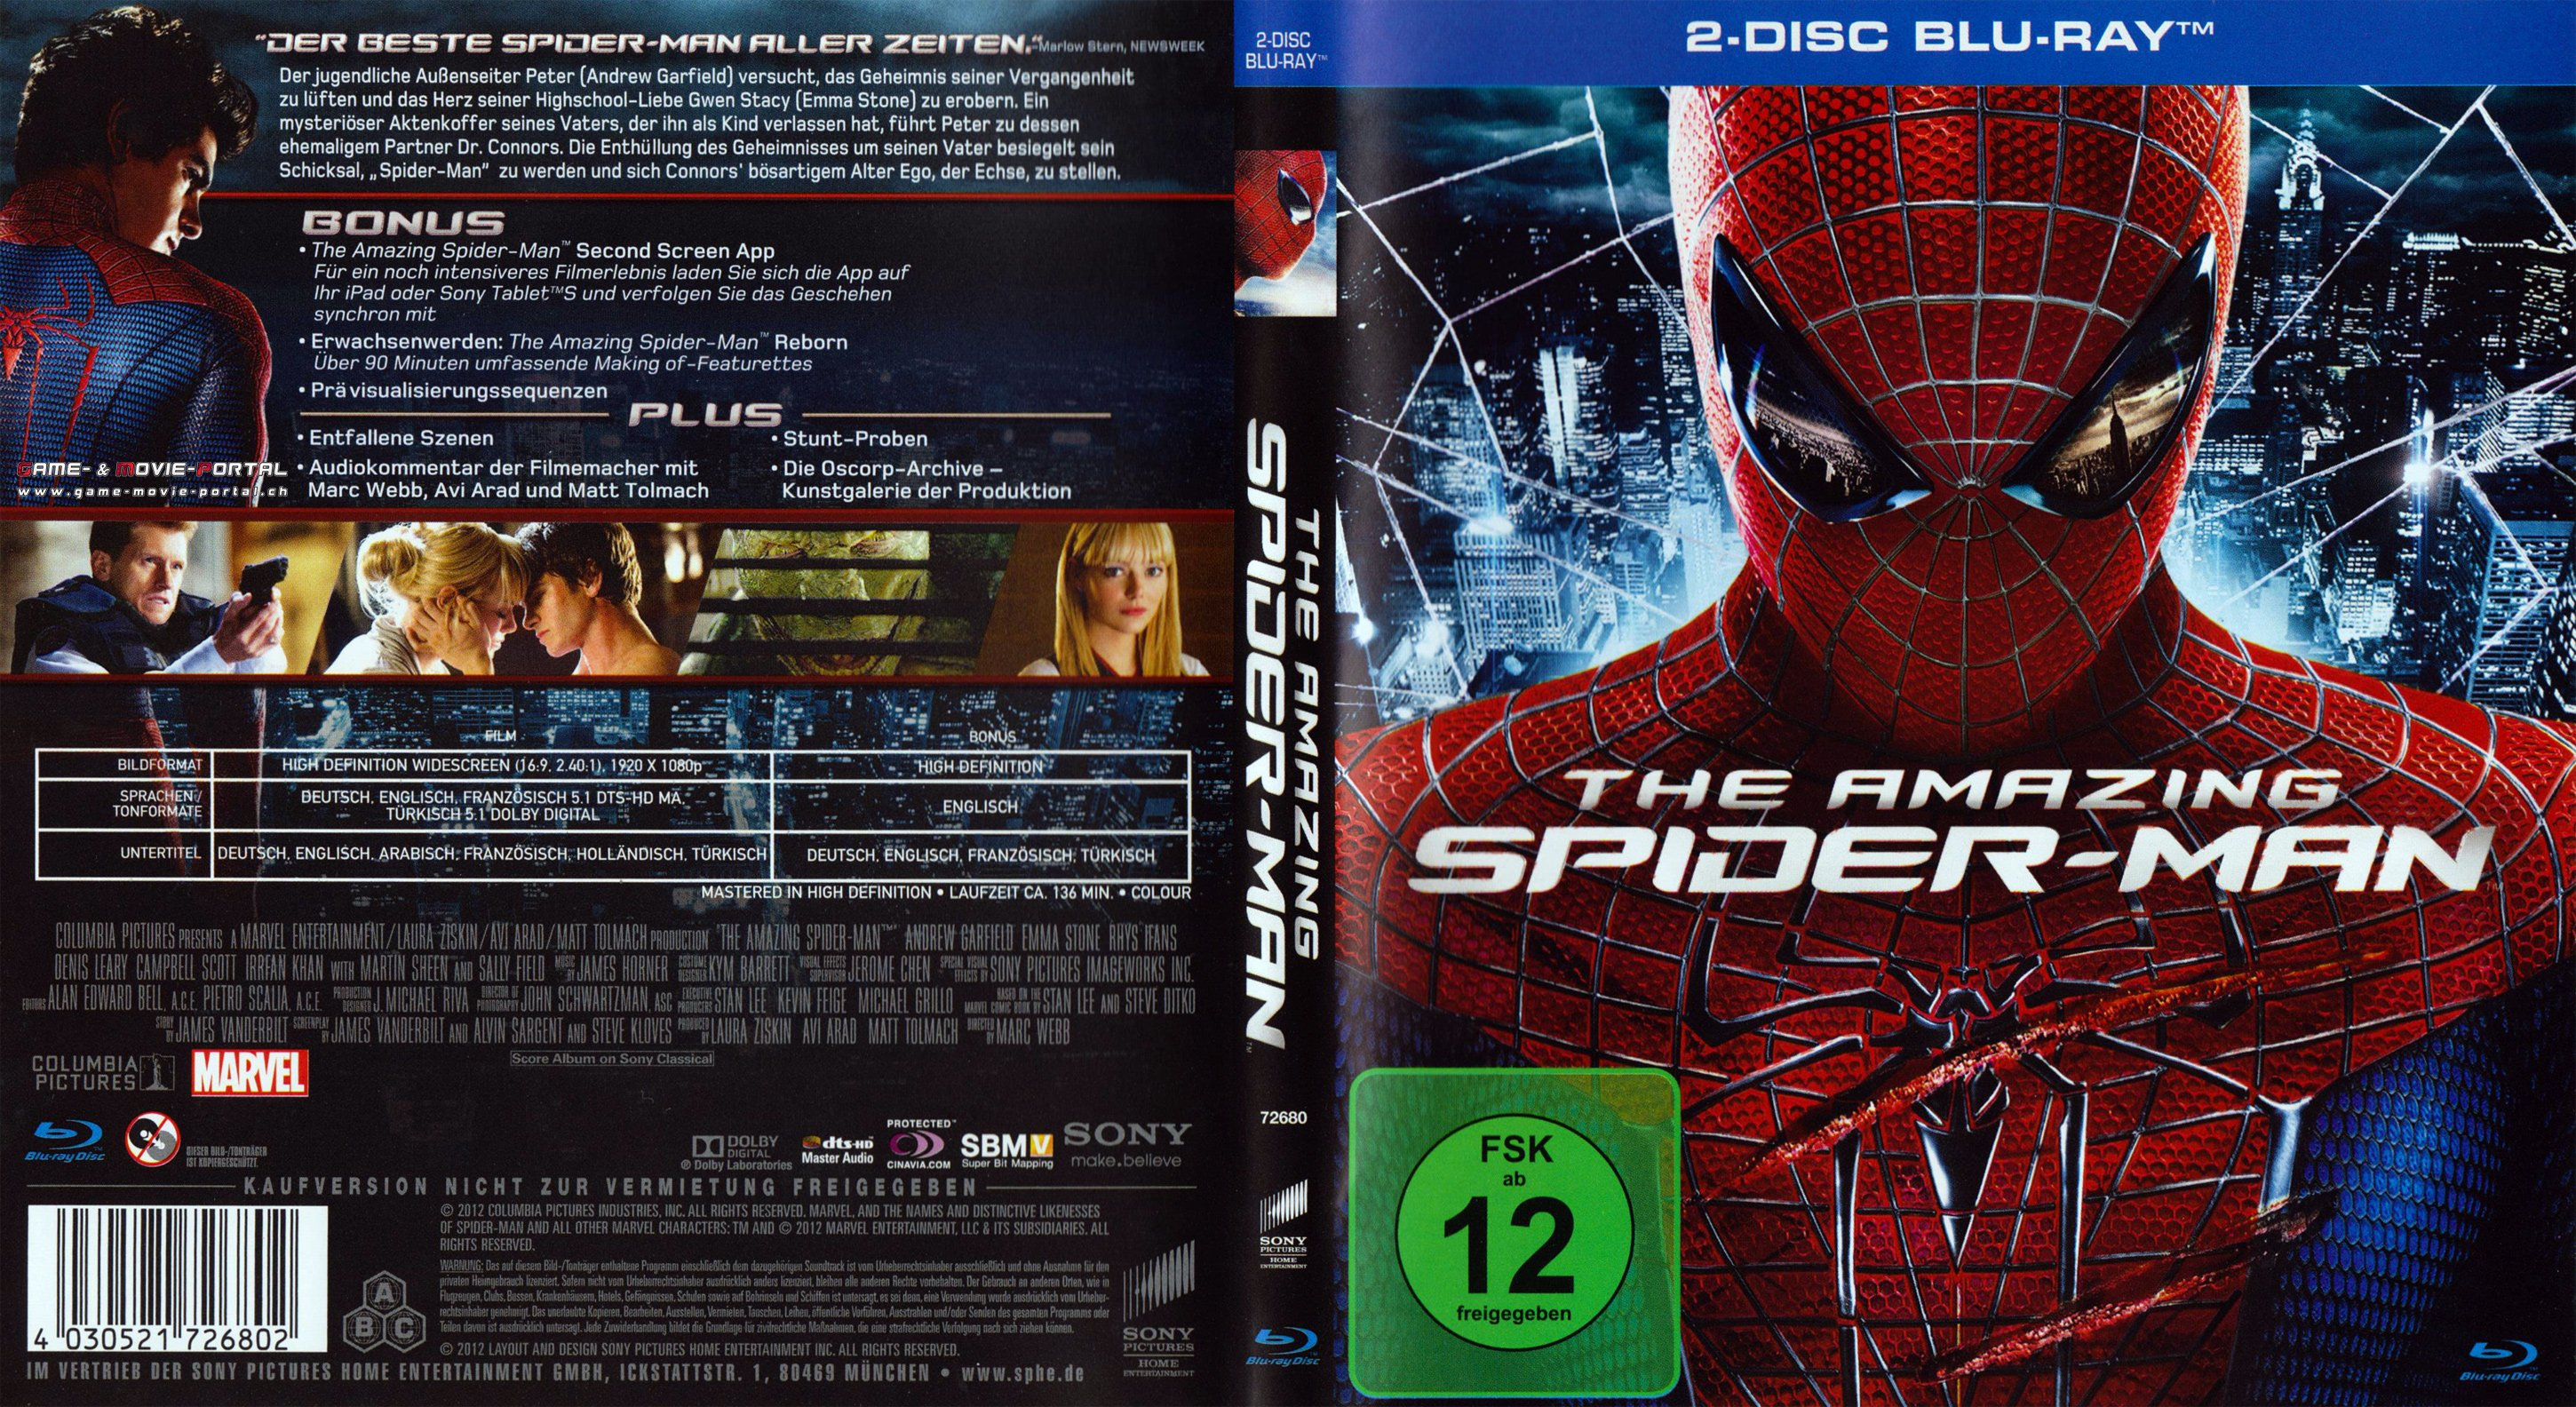 The amazing spider man blu ray cover